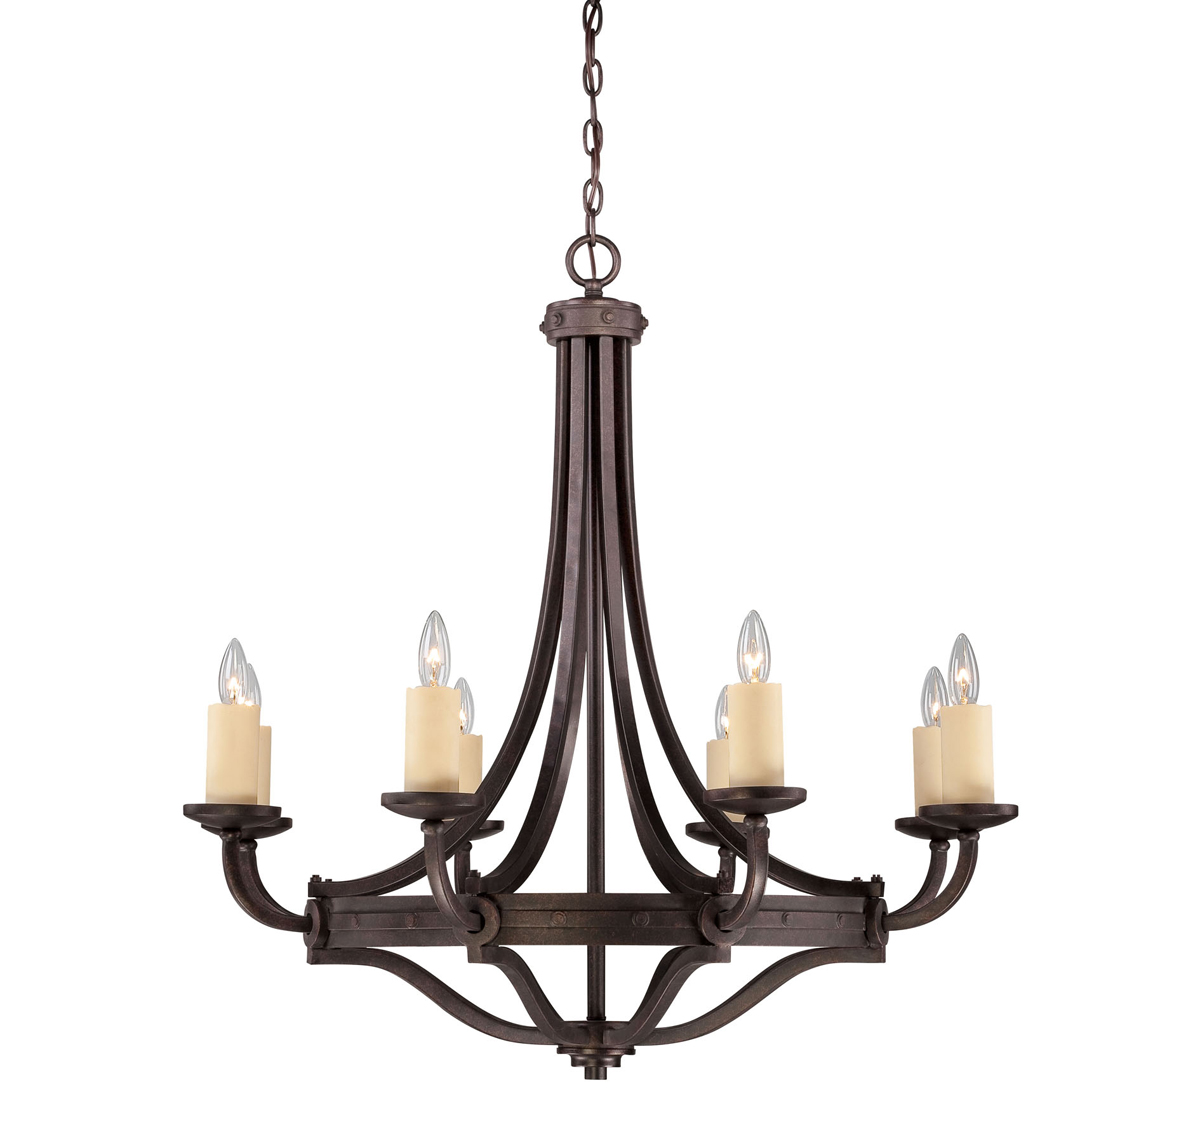 Savoy House Lighting (1-2012-8-05) Elba 8 Light Chandelier in Oiled Copper Finish, Designed by Brian Thomas